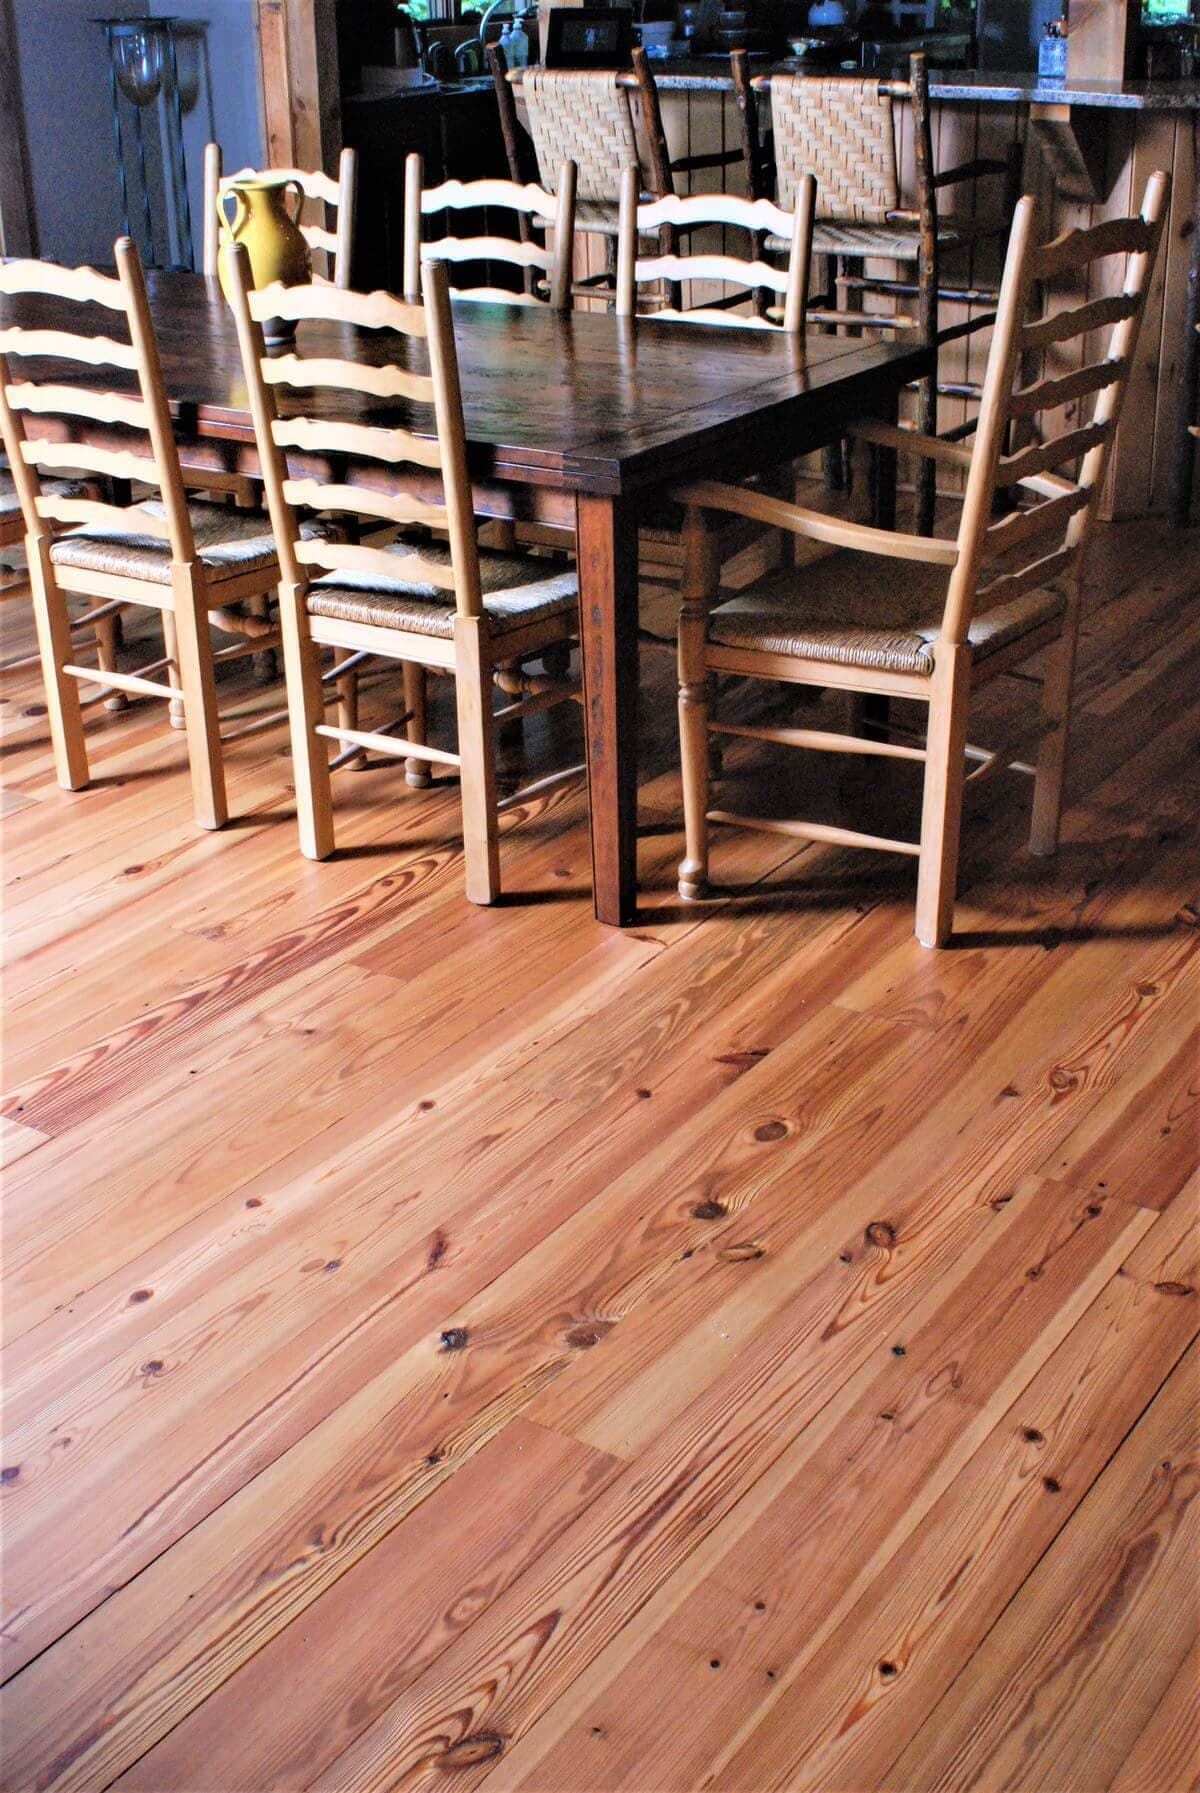 Cabin grade heart pine floor in room with ladder back chairs, hendersonville nc 5